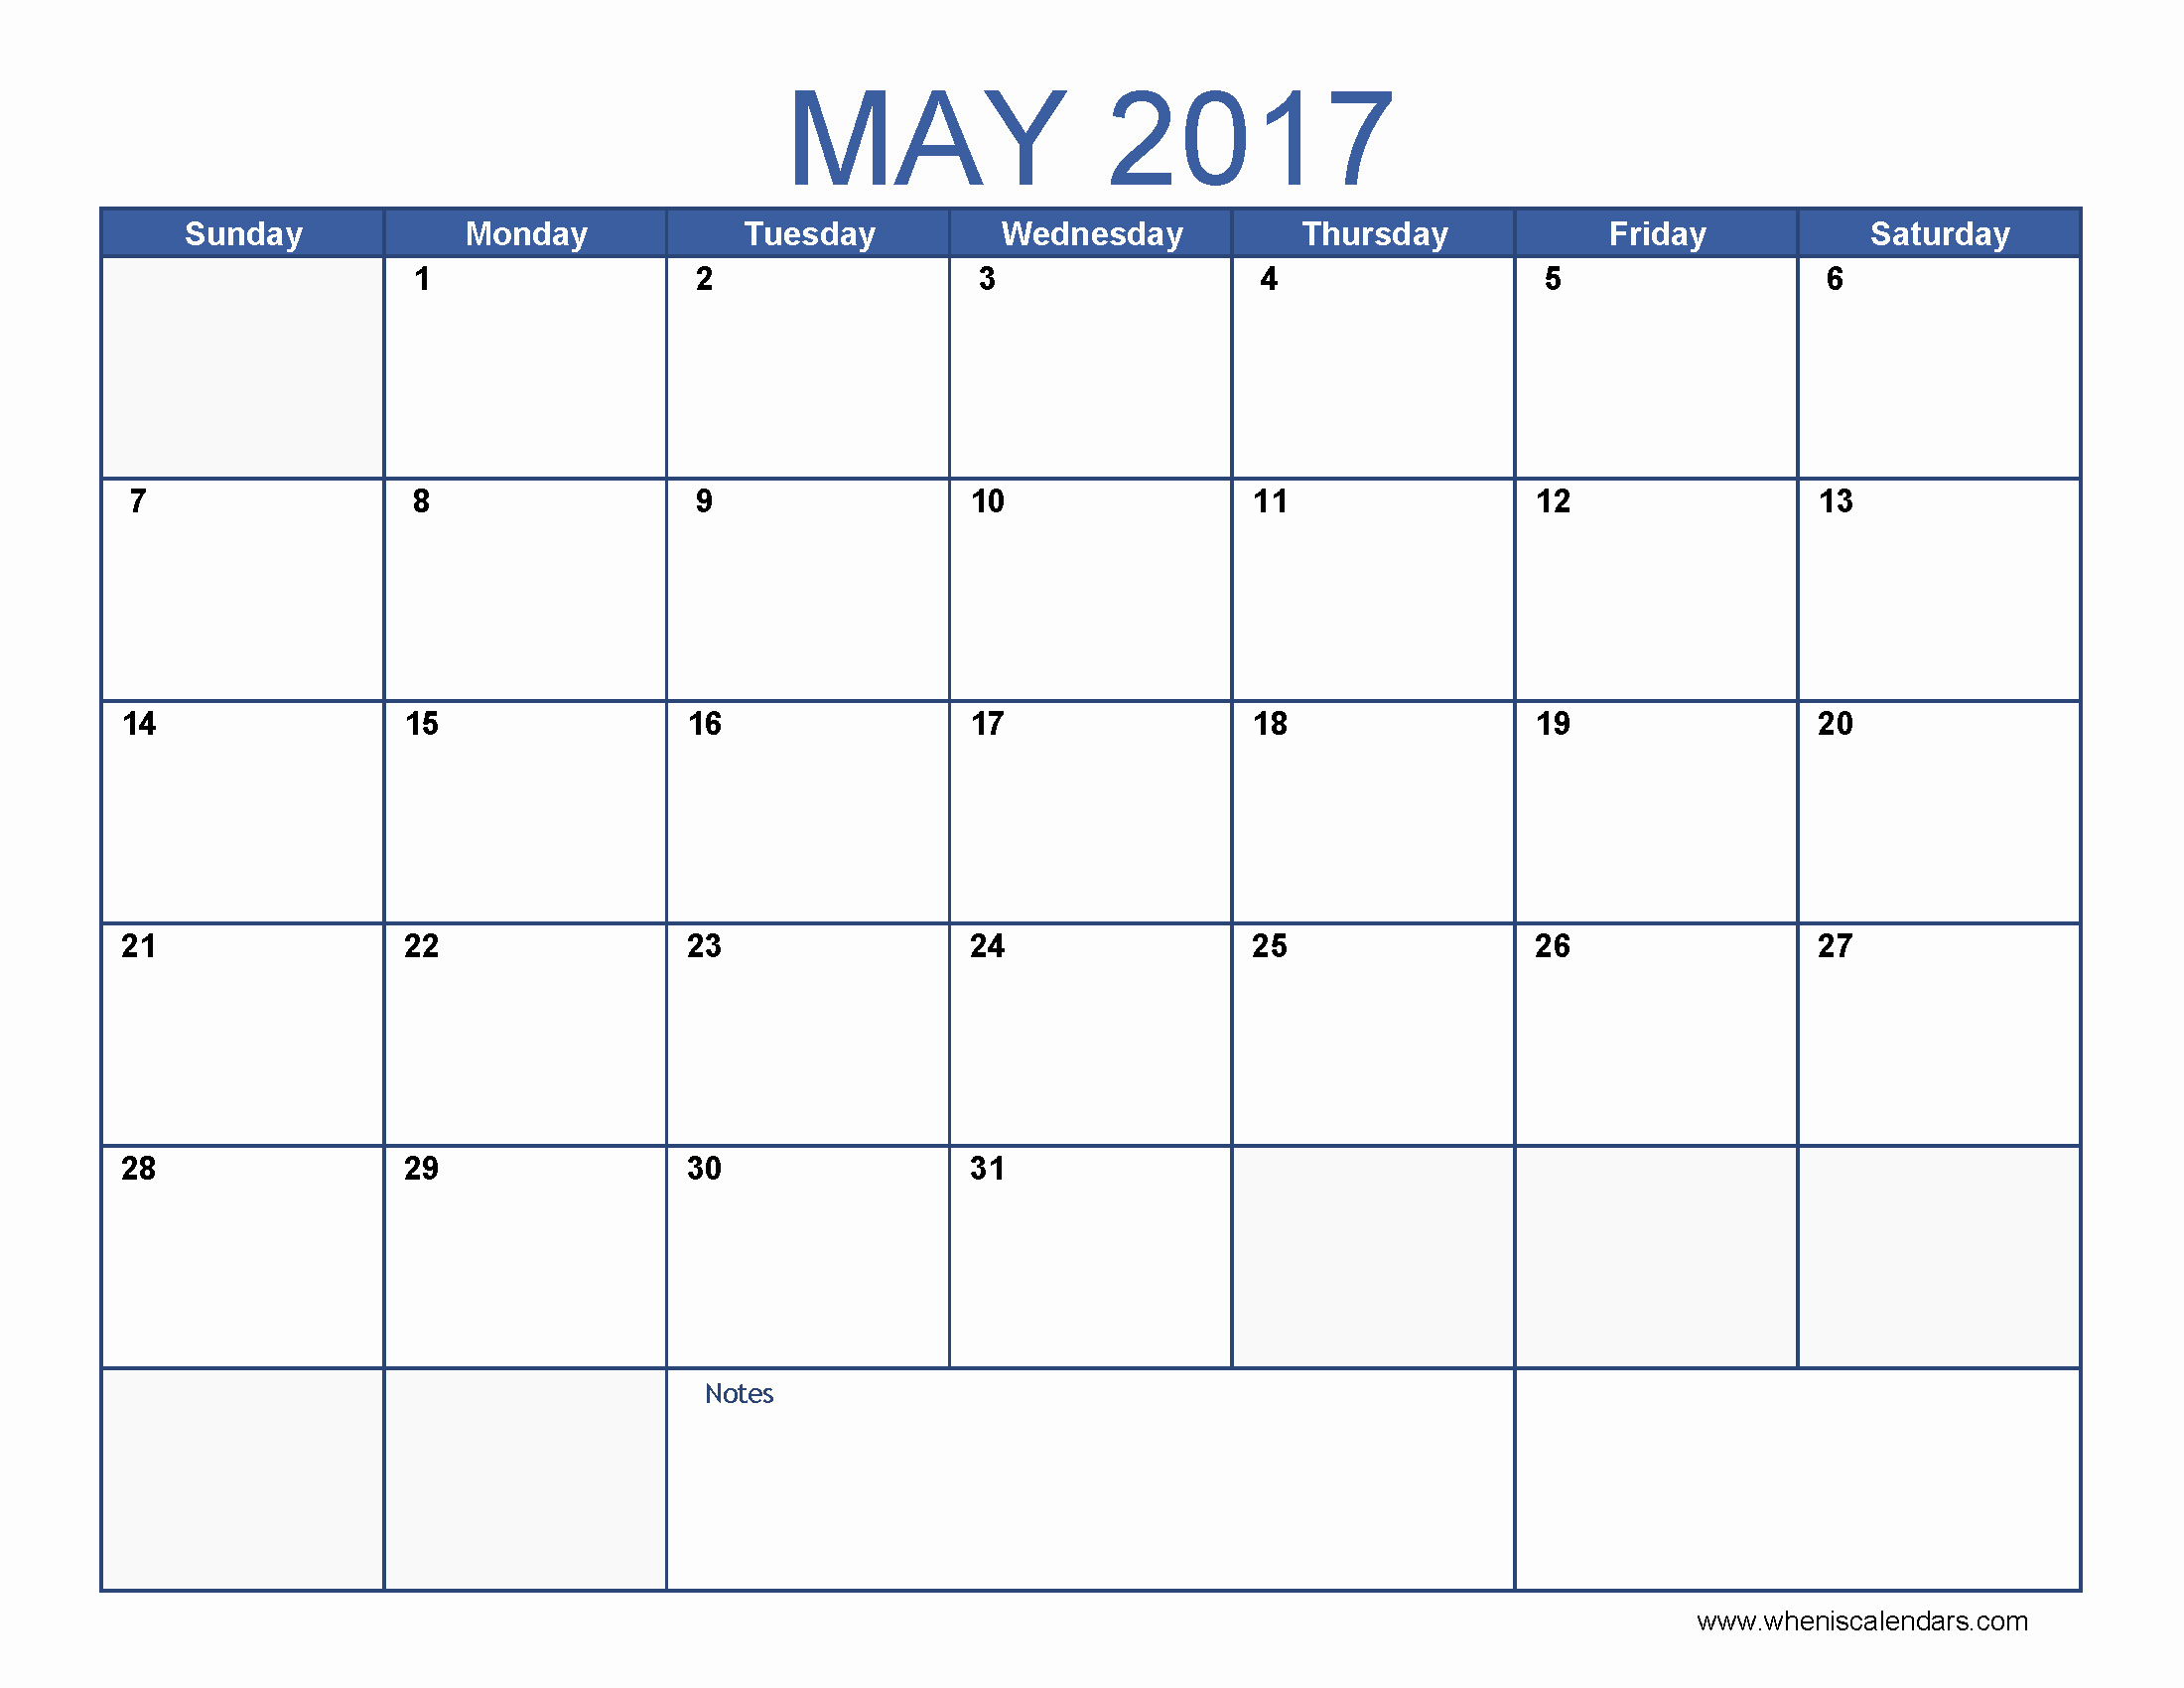 Free 2017 Printable Calendar Word Elegant May 2017 Calendar Word